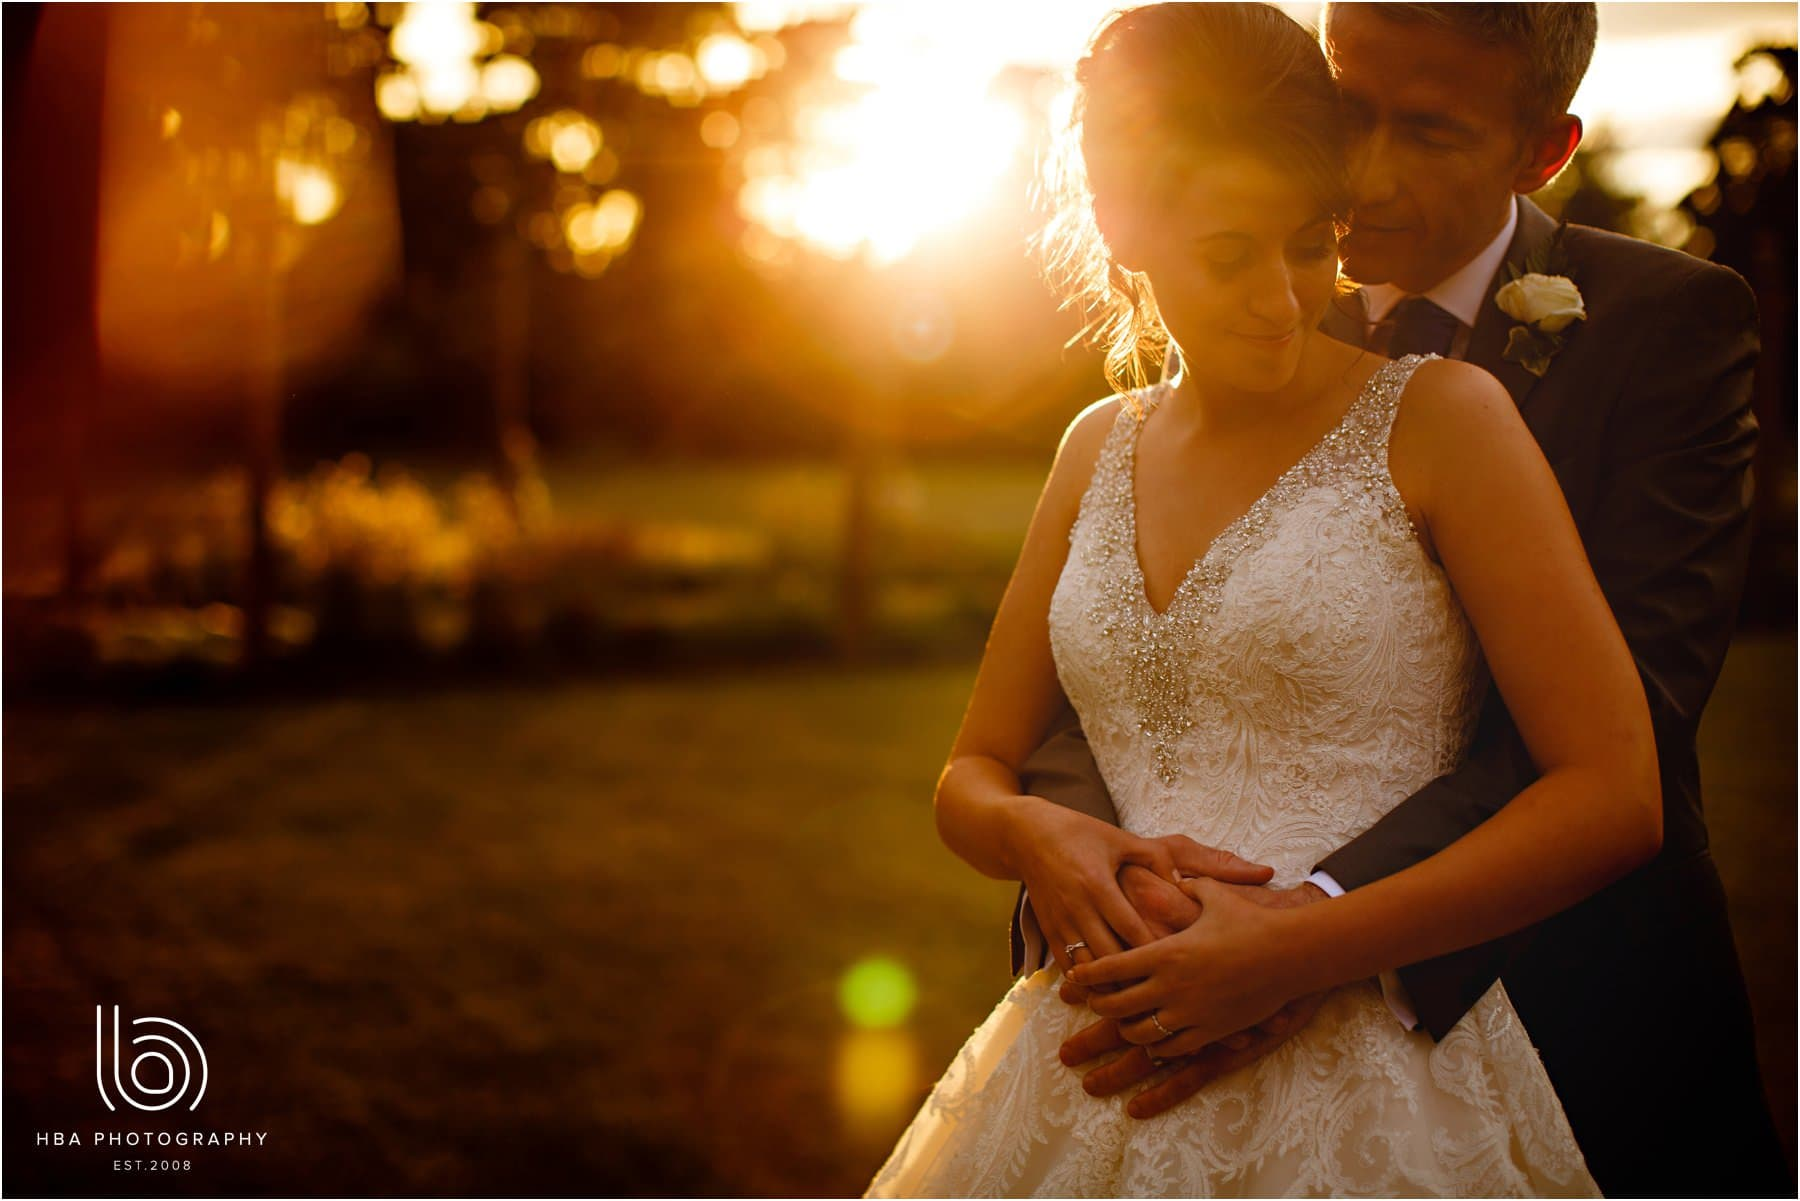 the bride & groom in the sunset